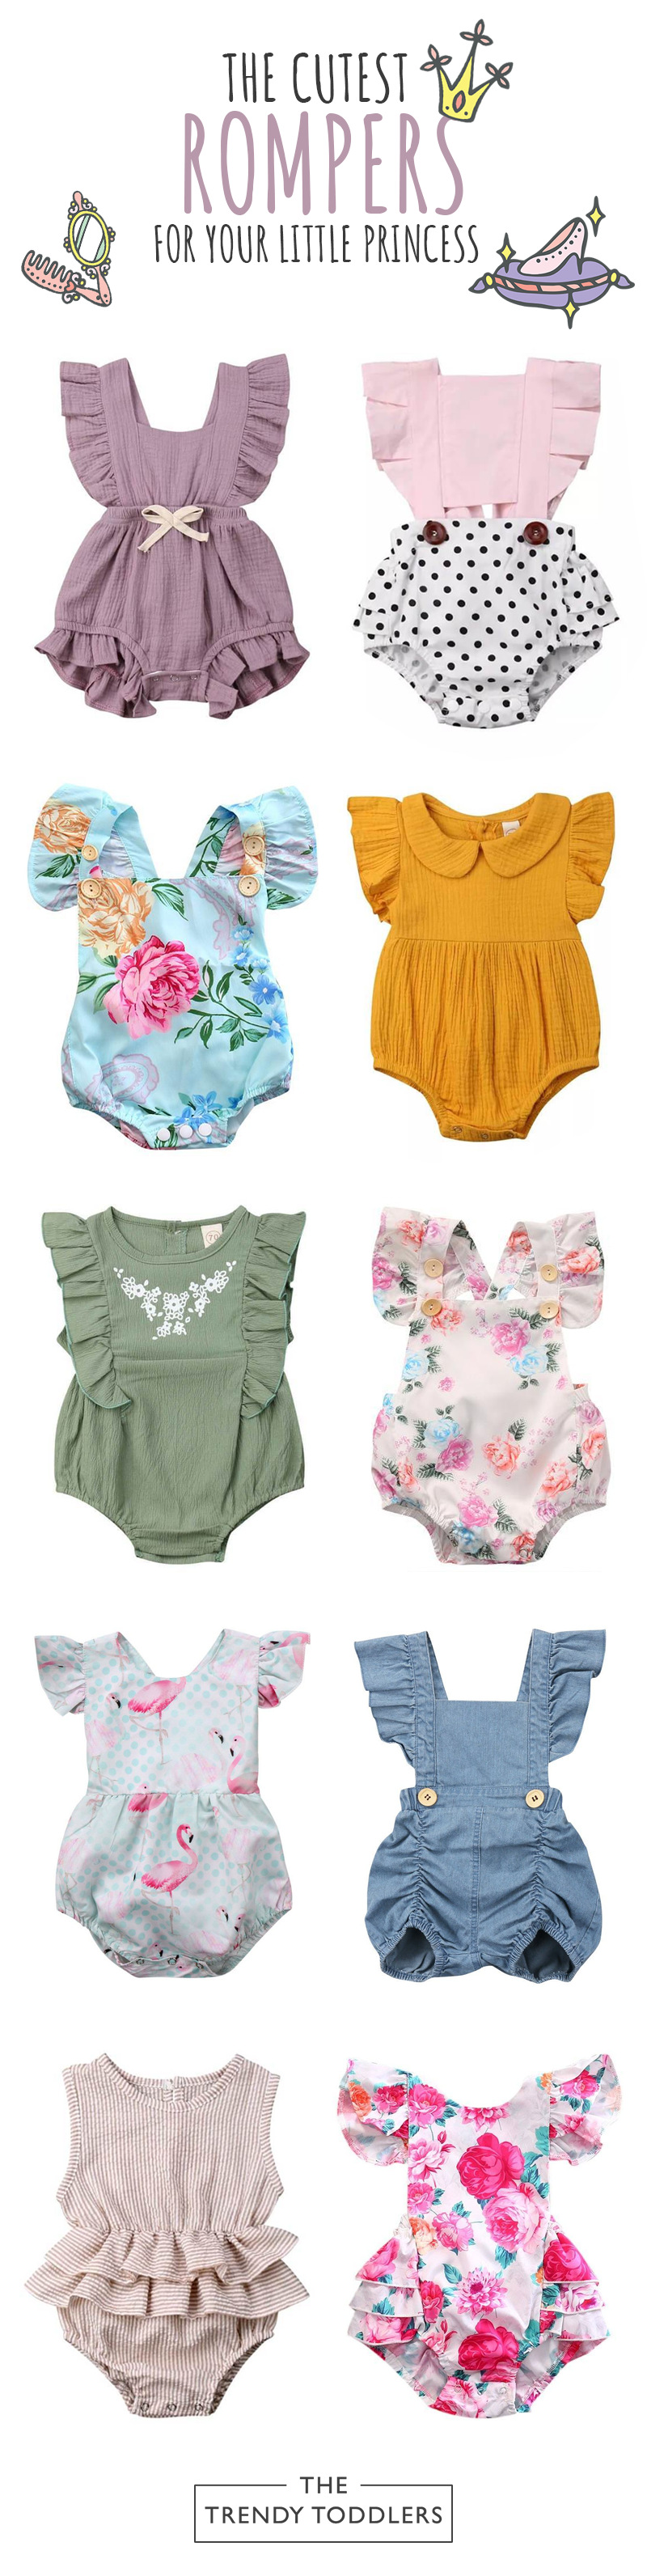 UP TO 70% OFF + FREE SHIPPING! Shop our entire collection of baby girl beautiful... 15